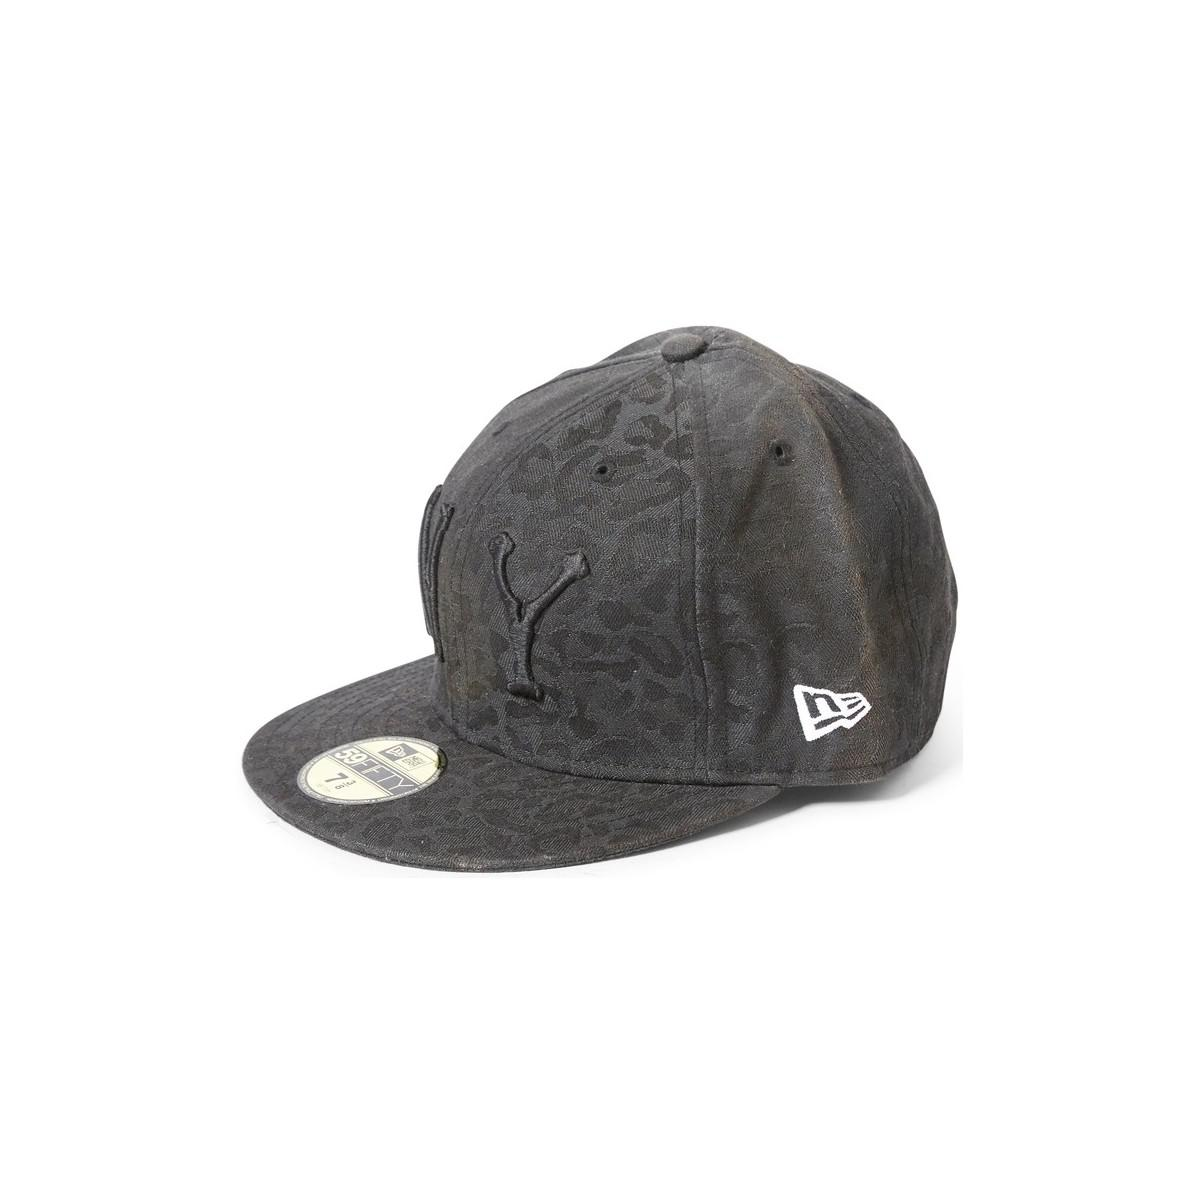 93b3f47036b Supreme Ny Bones Leopard New Era Cap Black Men s Cap In Black in ...